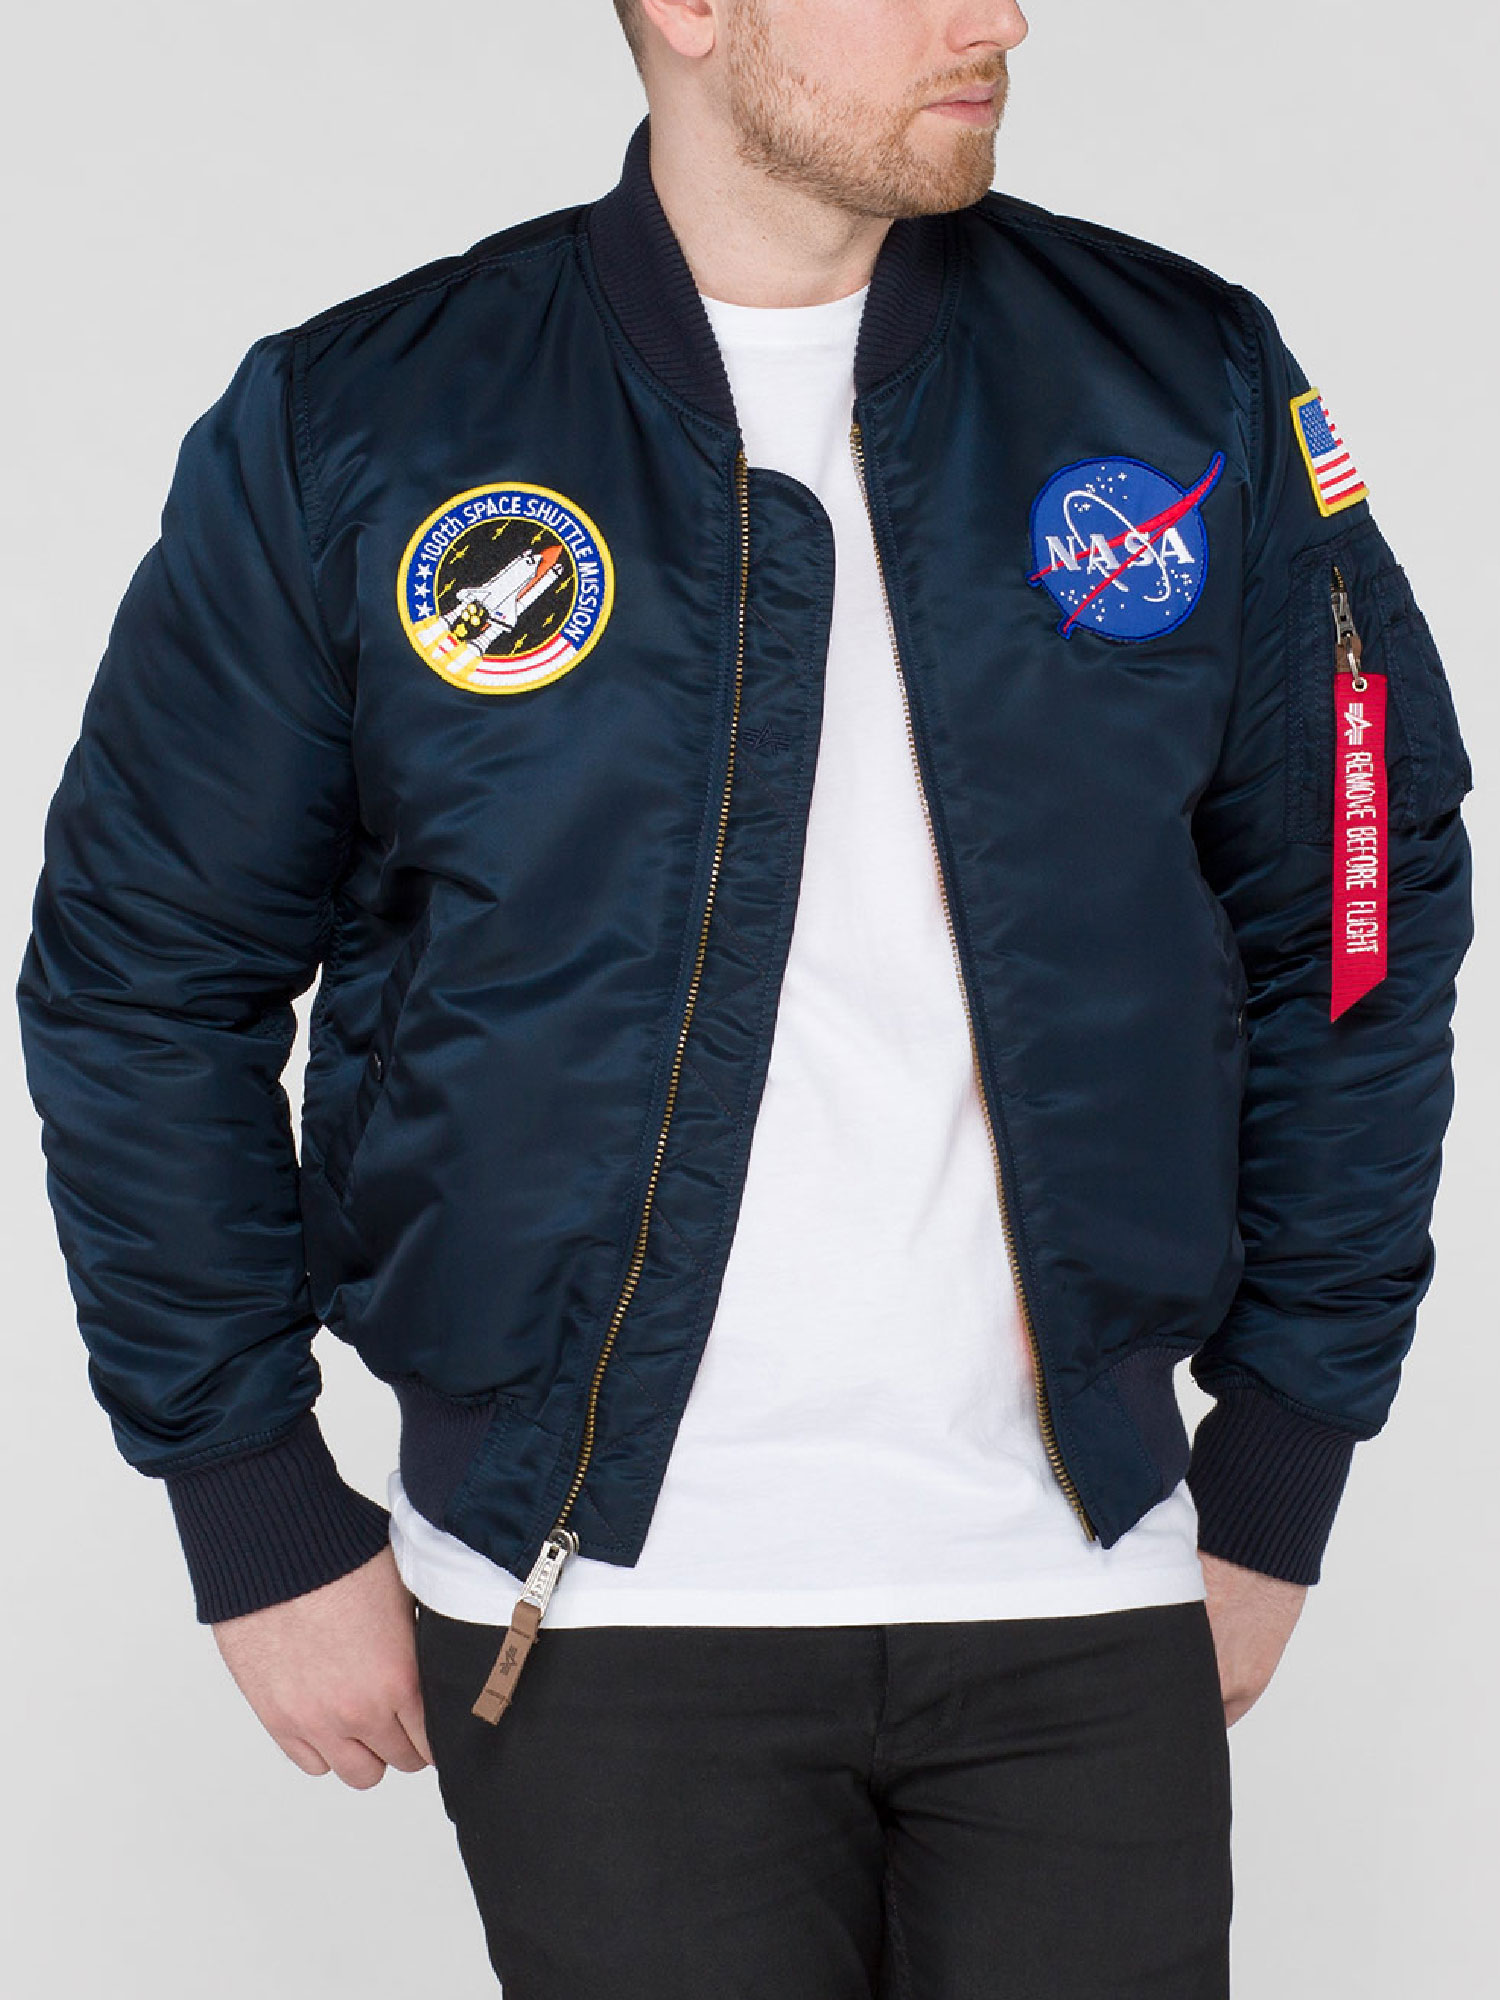 nasa 100th space shuttle mission jacket - photo #15